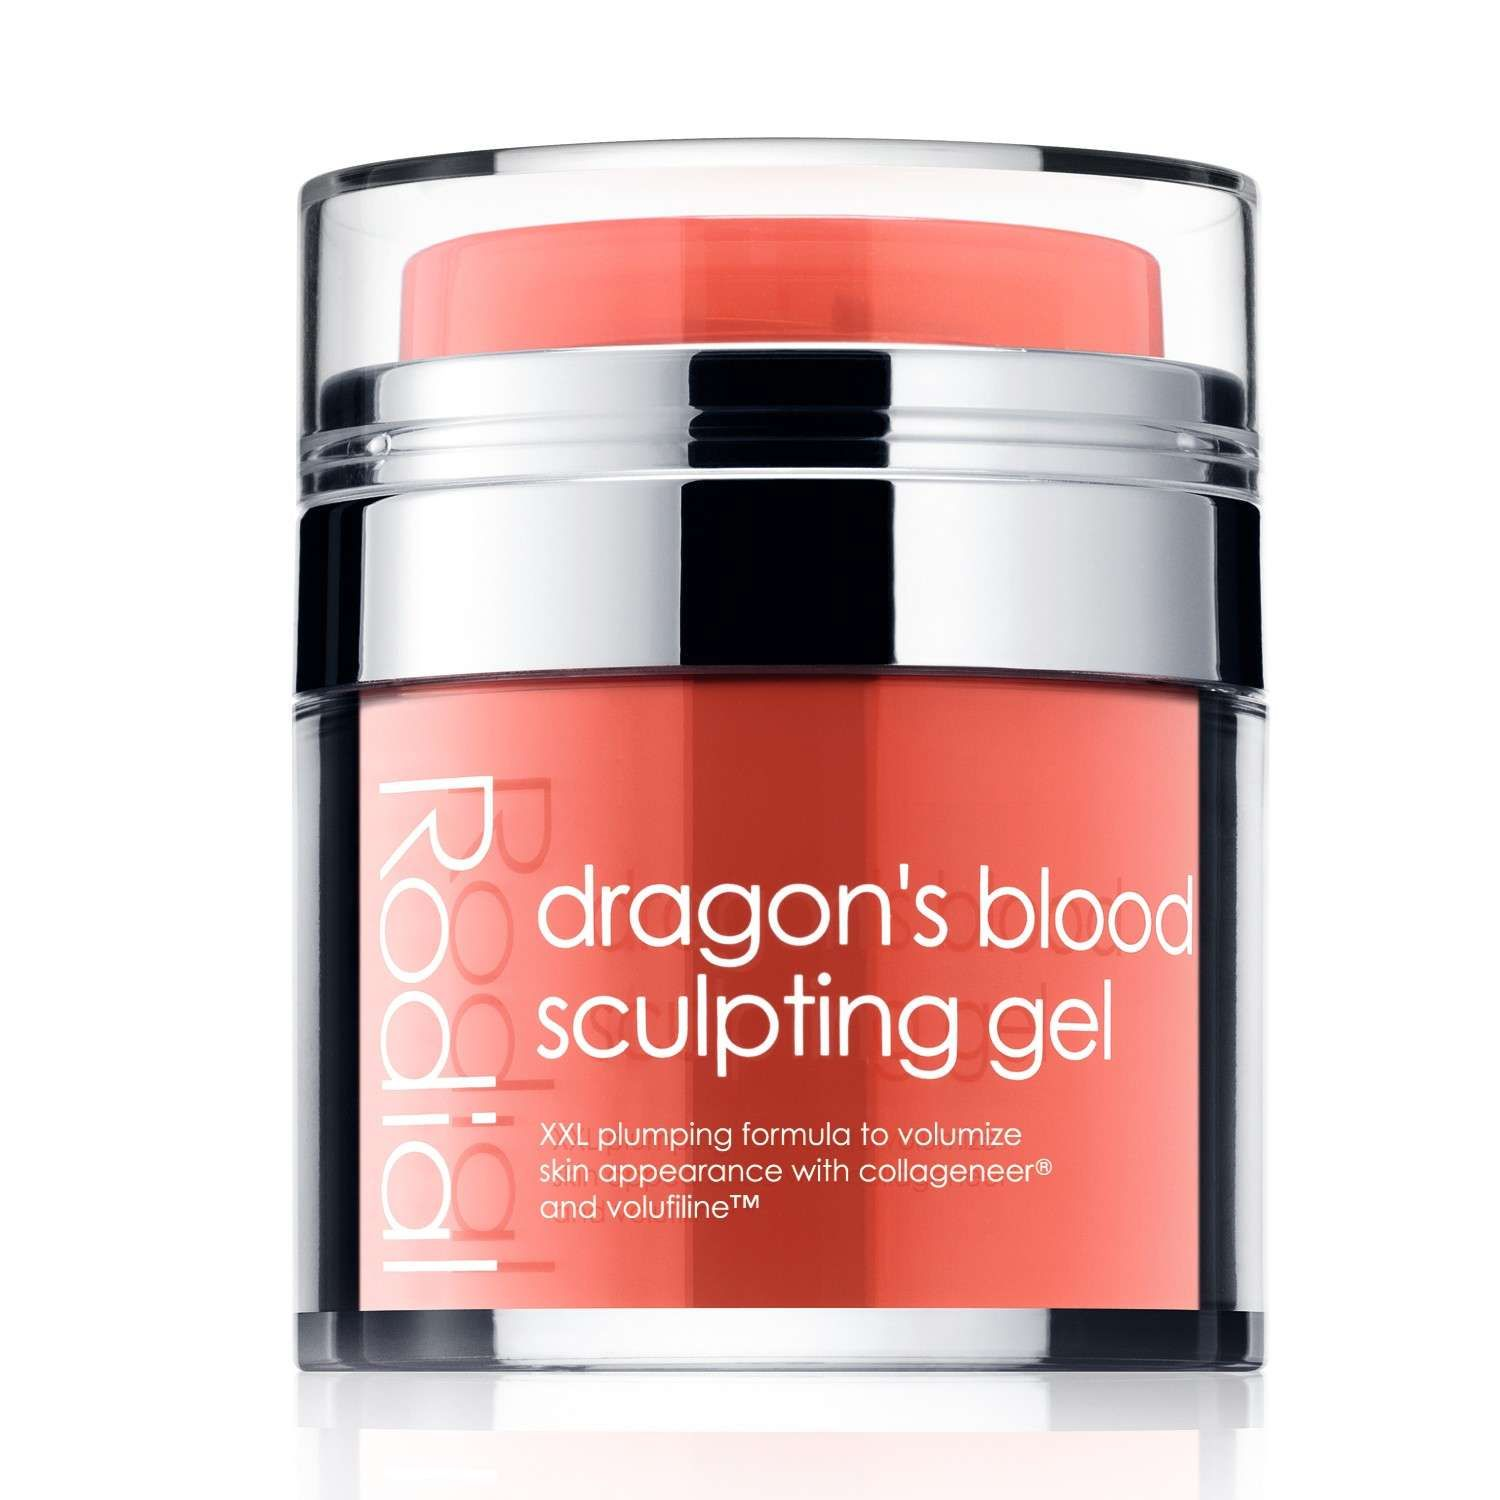 Rodial dragon's blood sculpting gel (50 ml / 1.7 fl oz)